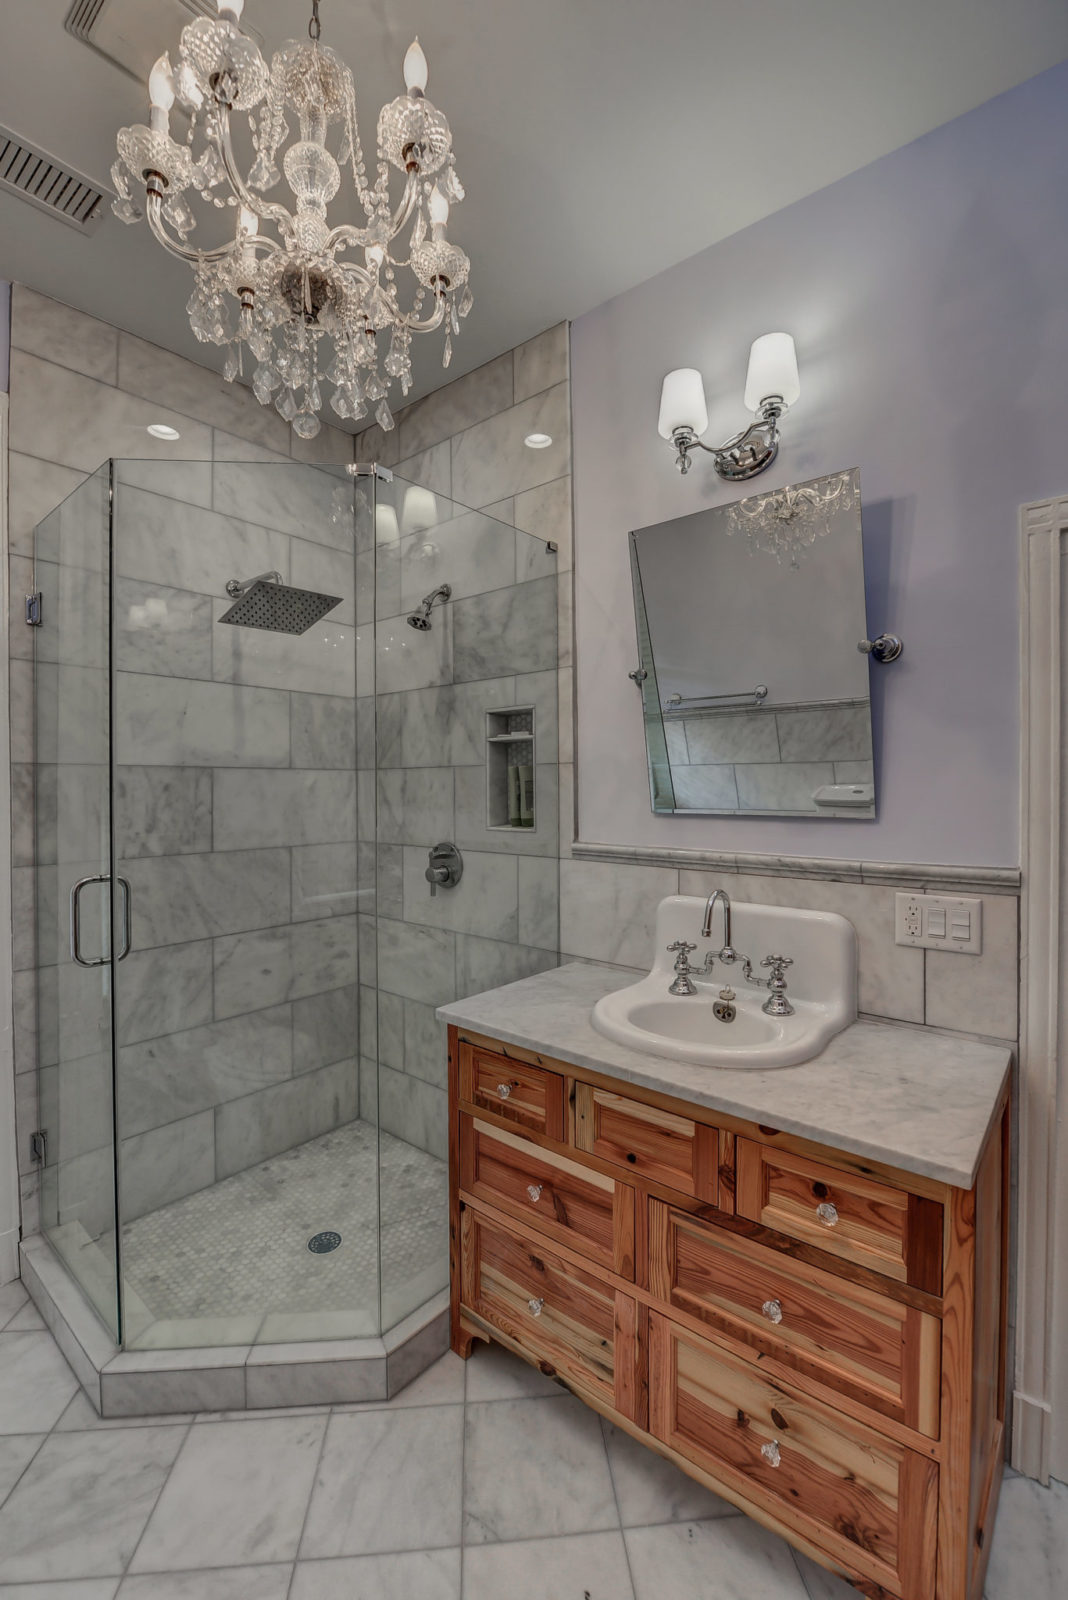 Post Civil War Custom Bathroom Remodel with marble floors, glass shower, wood vanity with marble top in Atlanta, GA